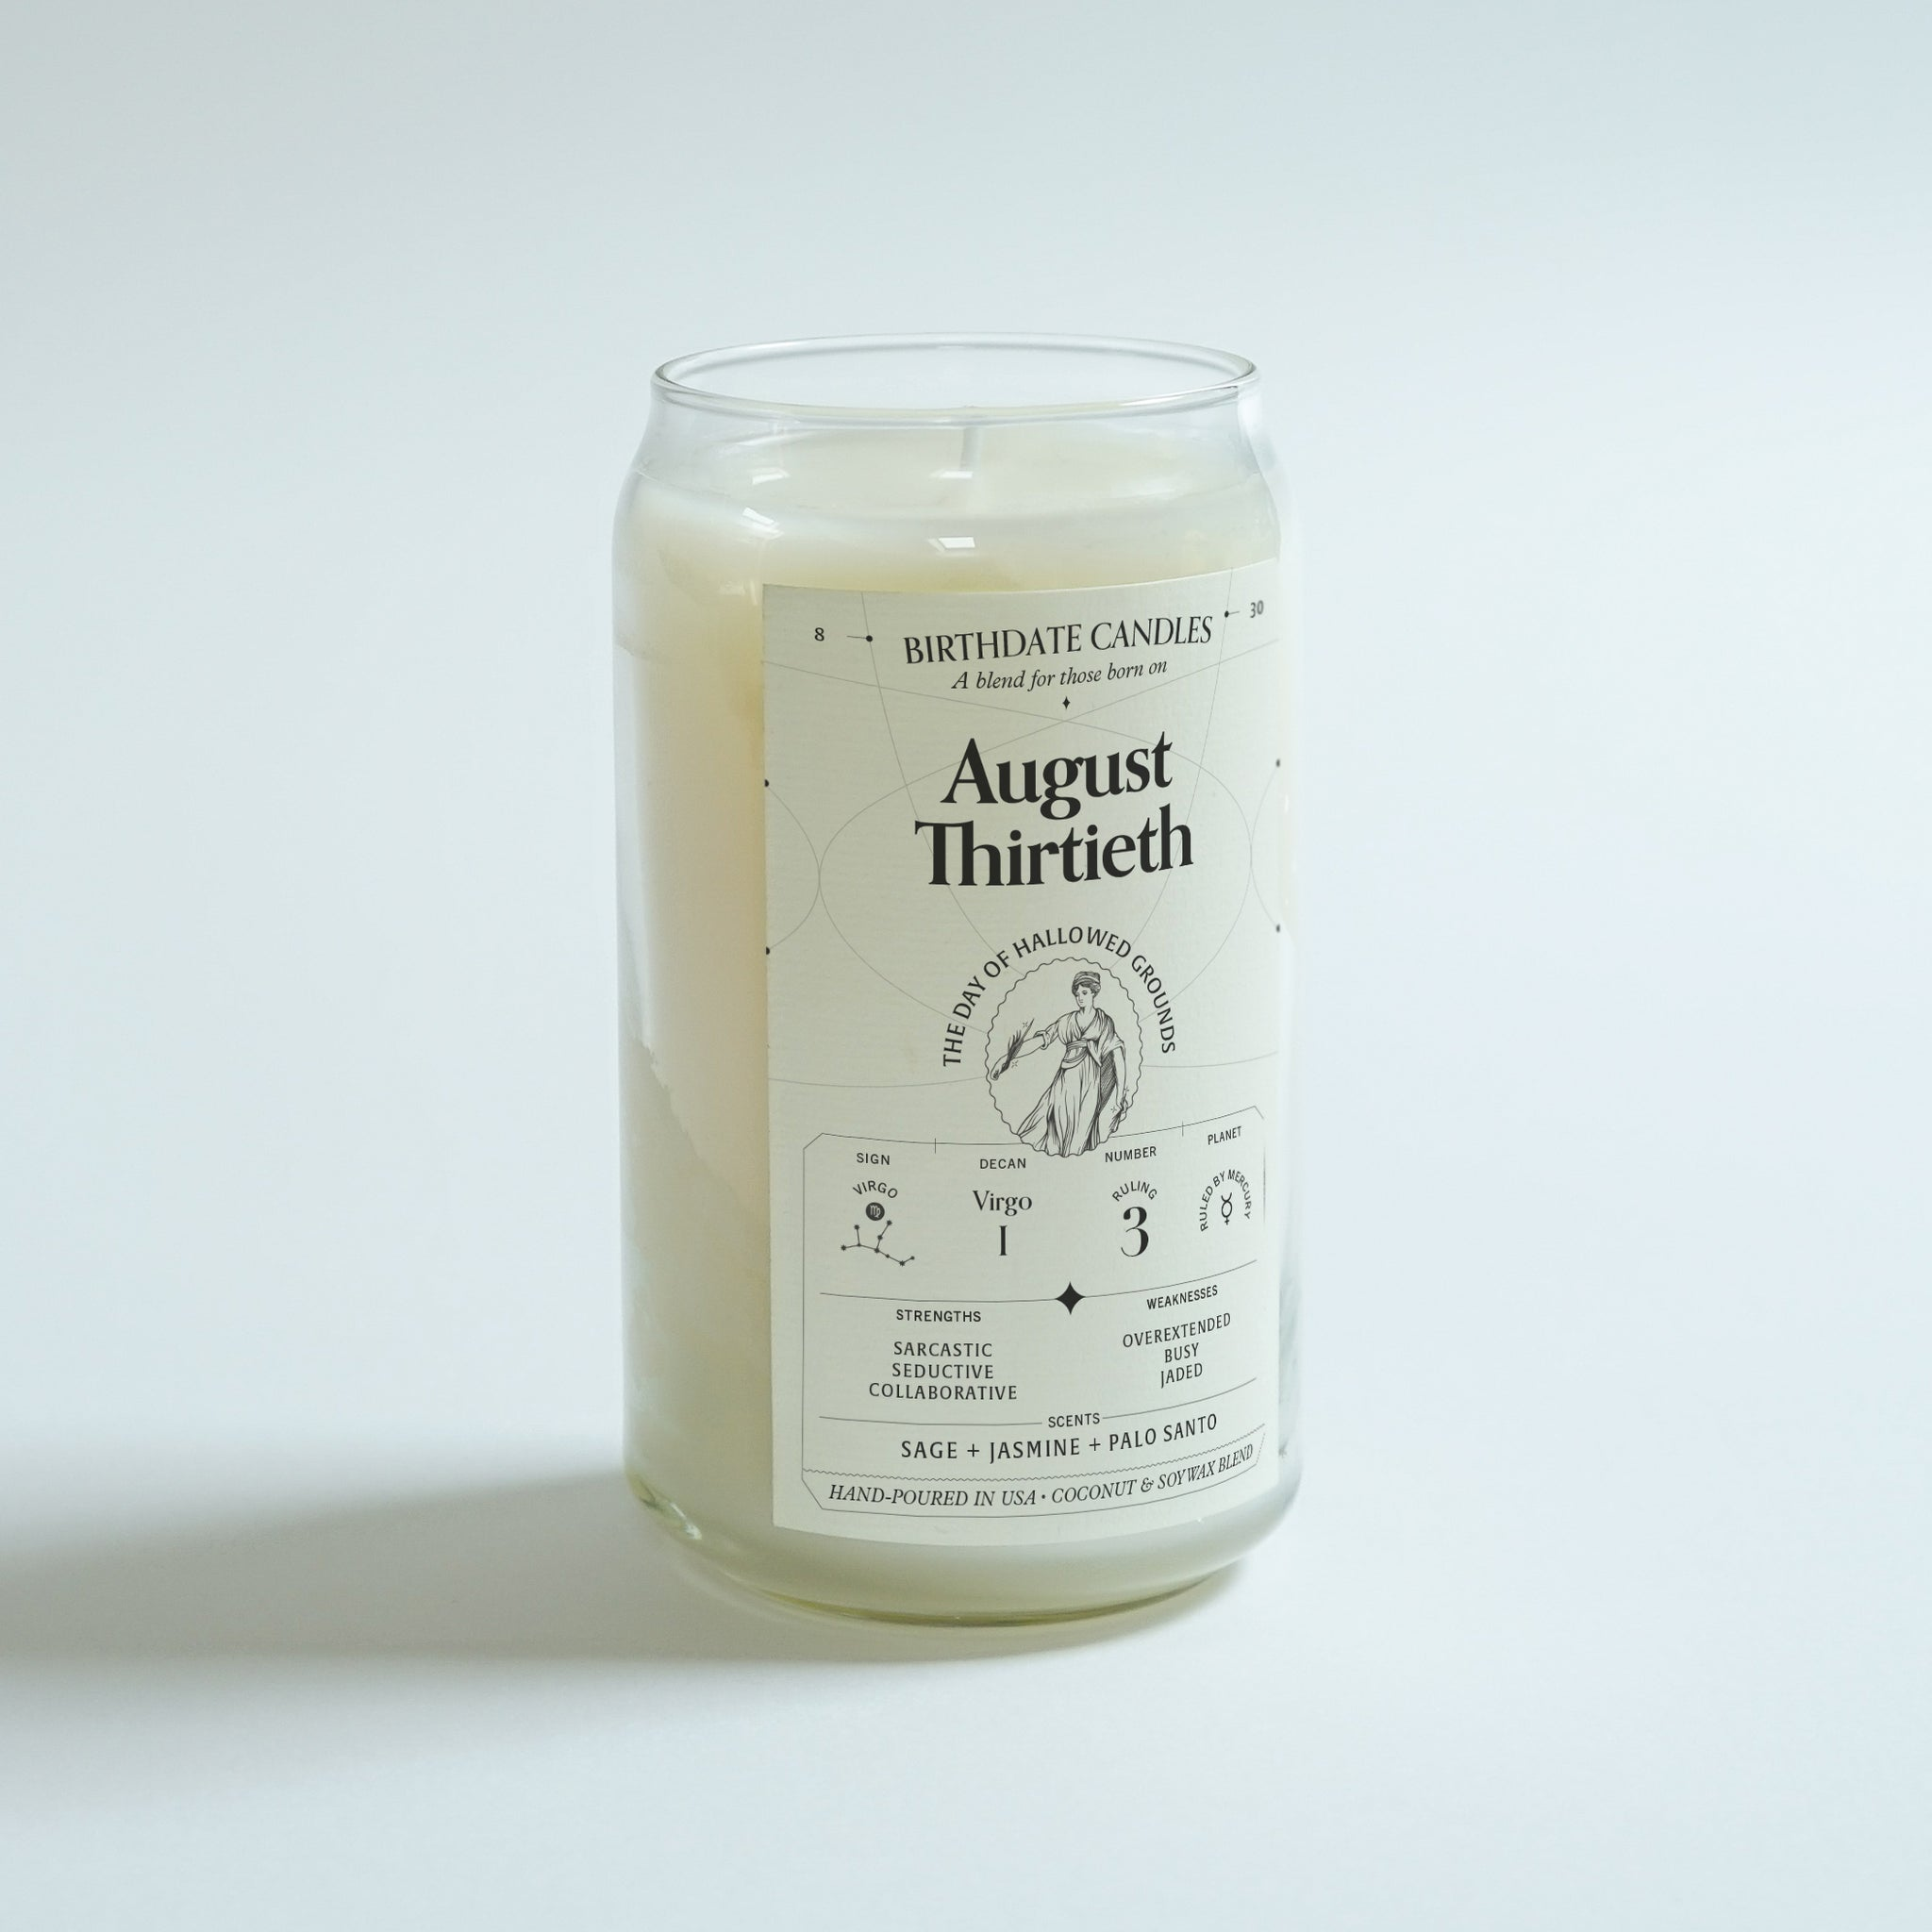 The August Thirtieth Birthday Candle